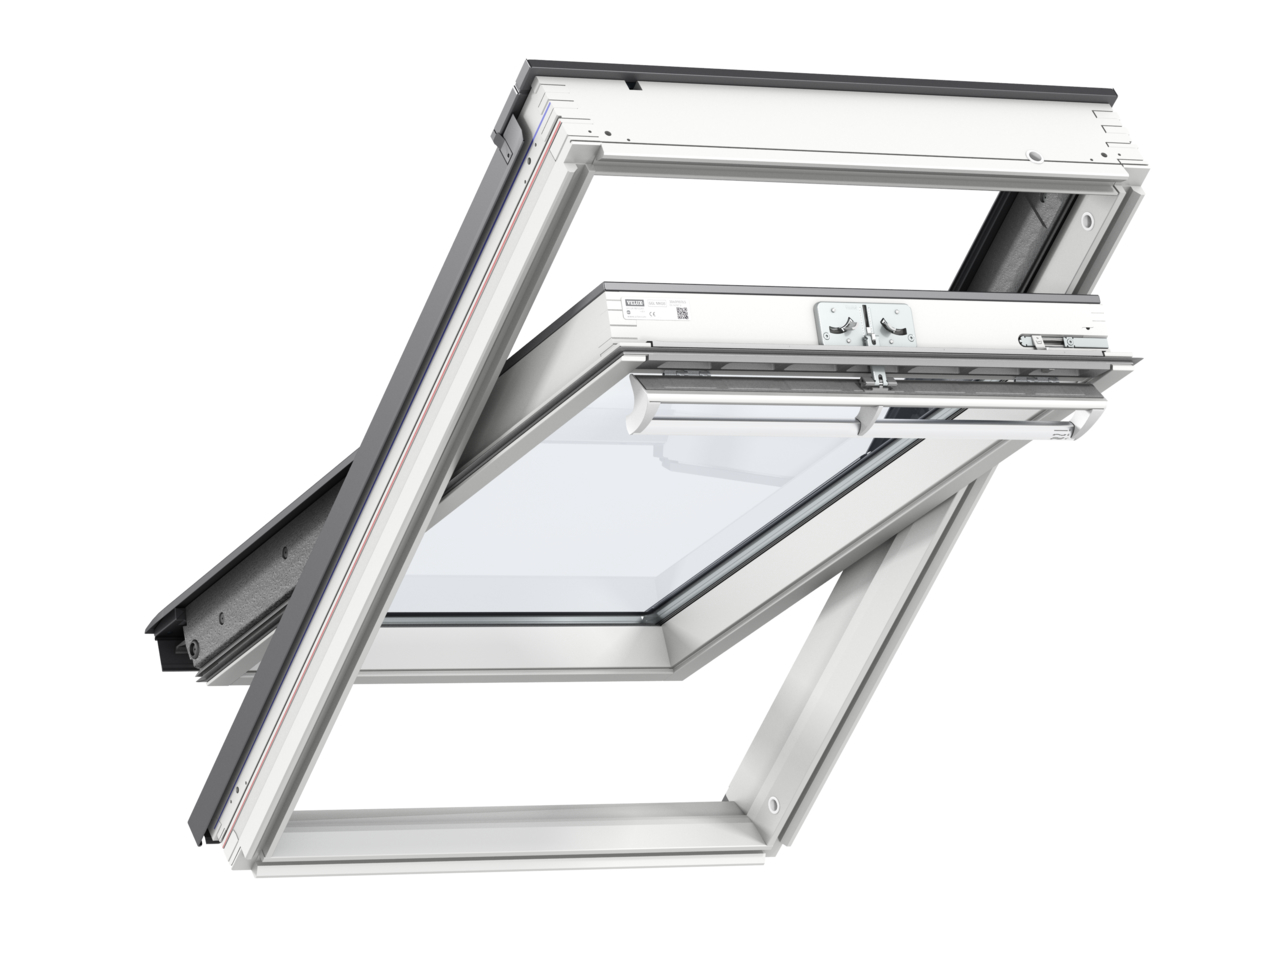 Velux GGL CK02 550 x 780mm Centre Pivot 66 Pane Roof Window - White Painted